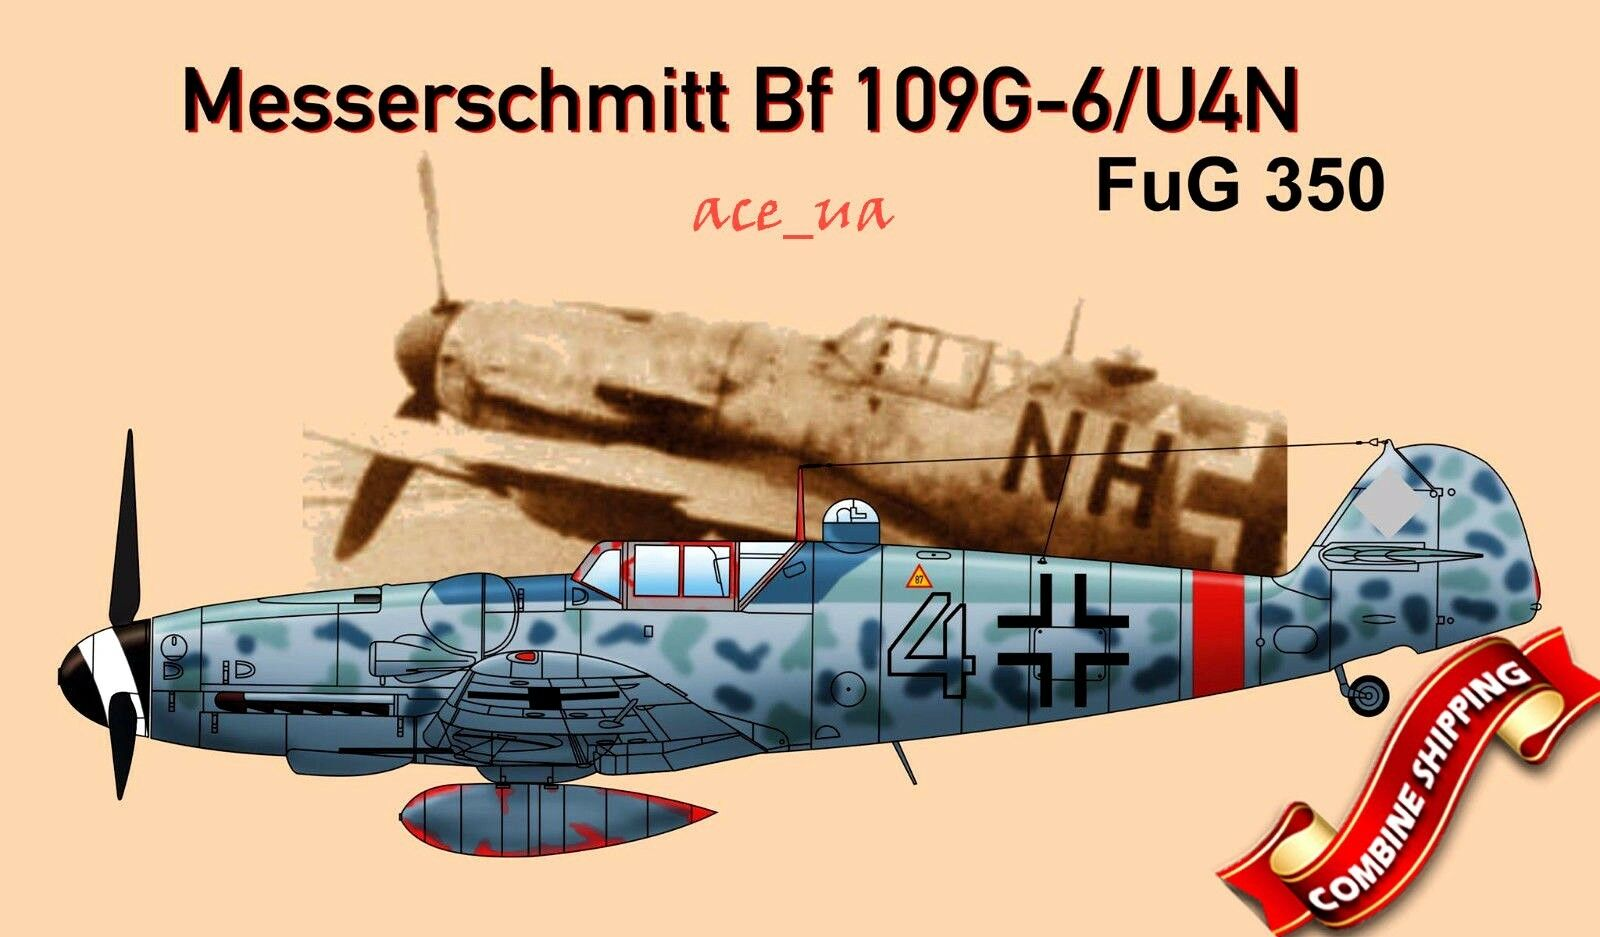 AMG 48701 Messerschmitt Bf 109G-6 U4N FuG 350 ( w Resin Parts ) Plastic Kit 1 48